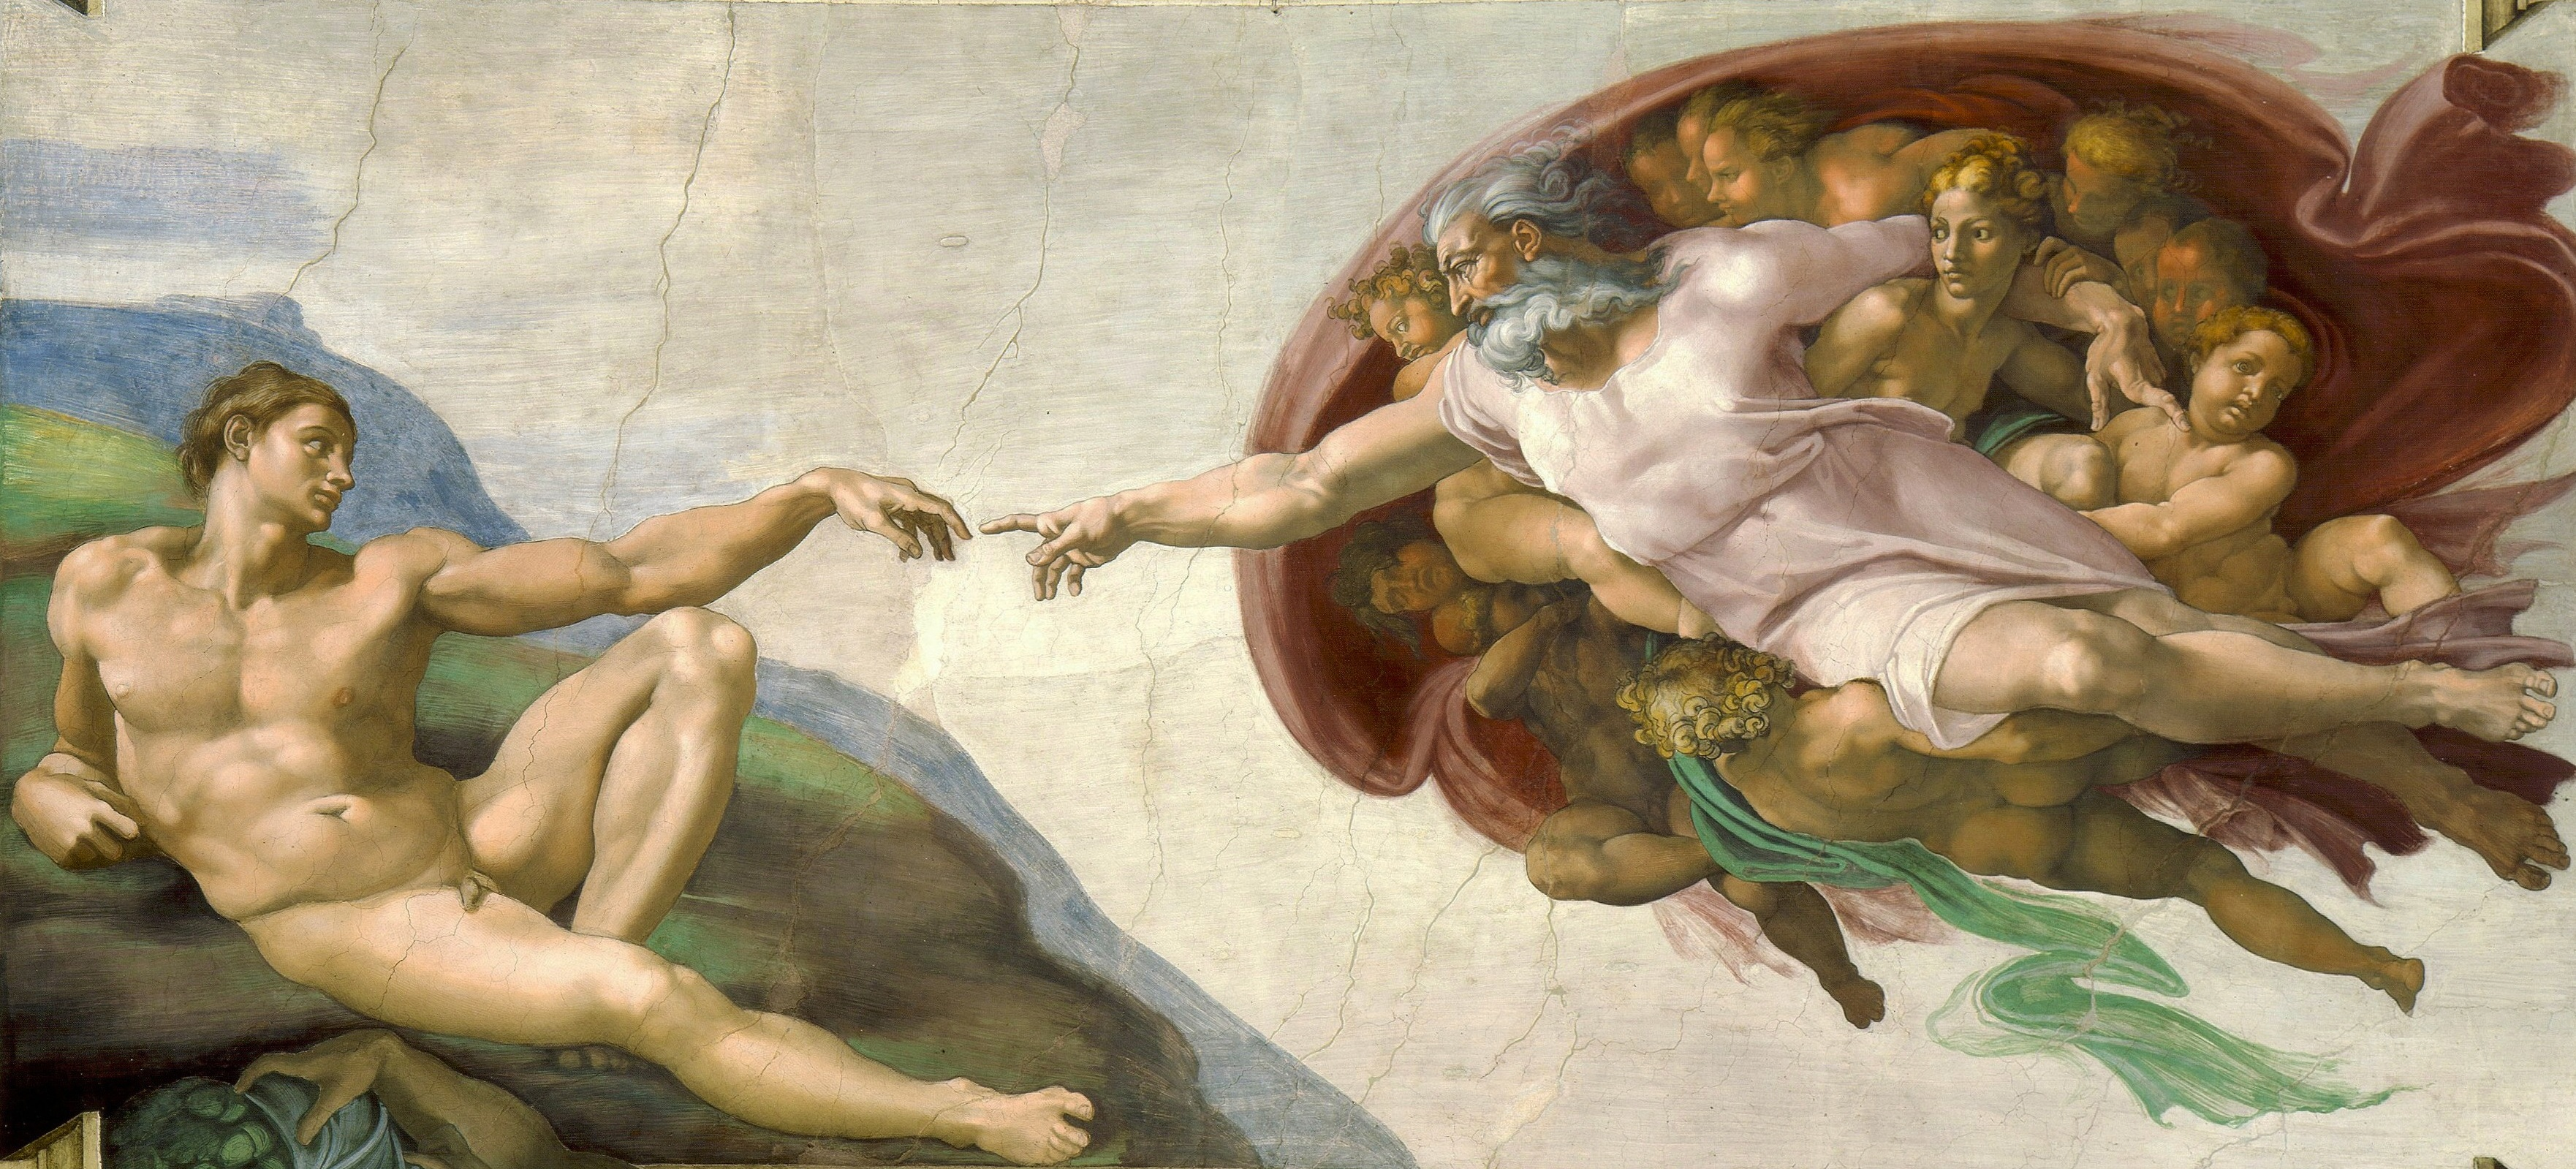 Michelangelo_-_Creation_of_Adam_%28cropped%29